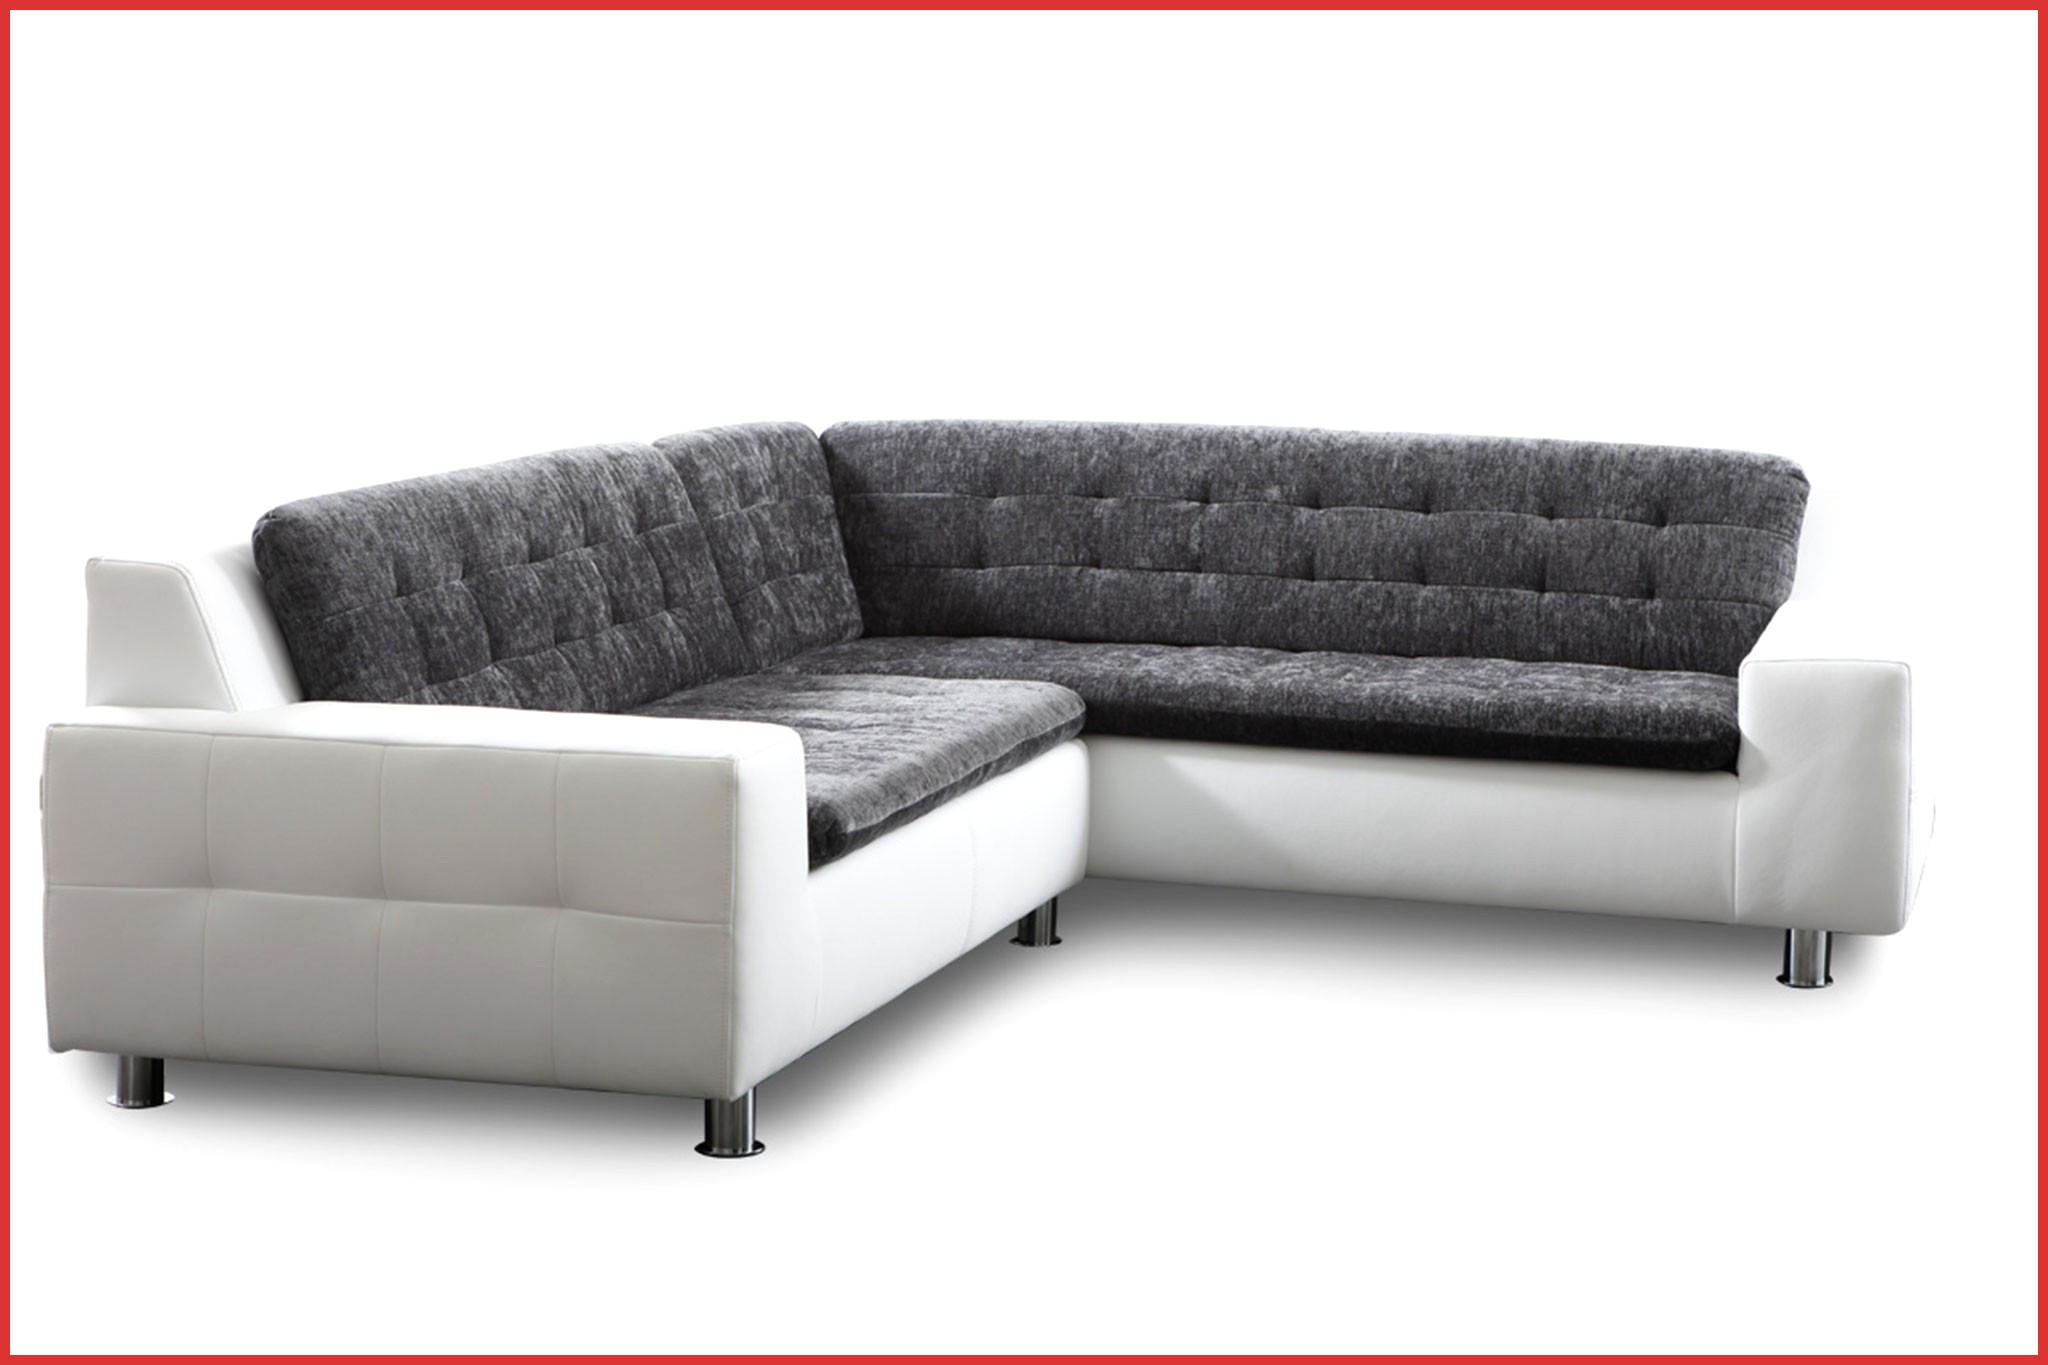 Canapé Cdiscount Angle Beau Images Canap Convertible 3 Places Conforama 33 Canape Marina Luxe Lit 28